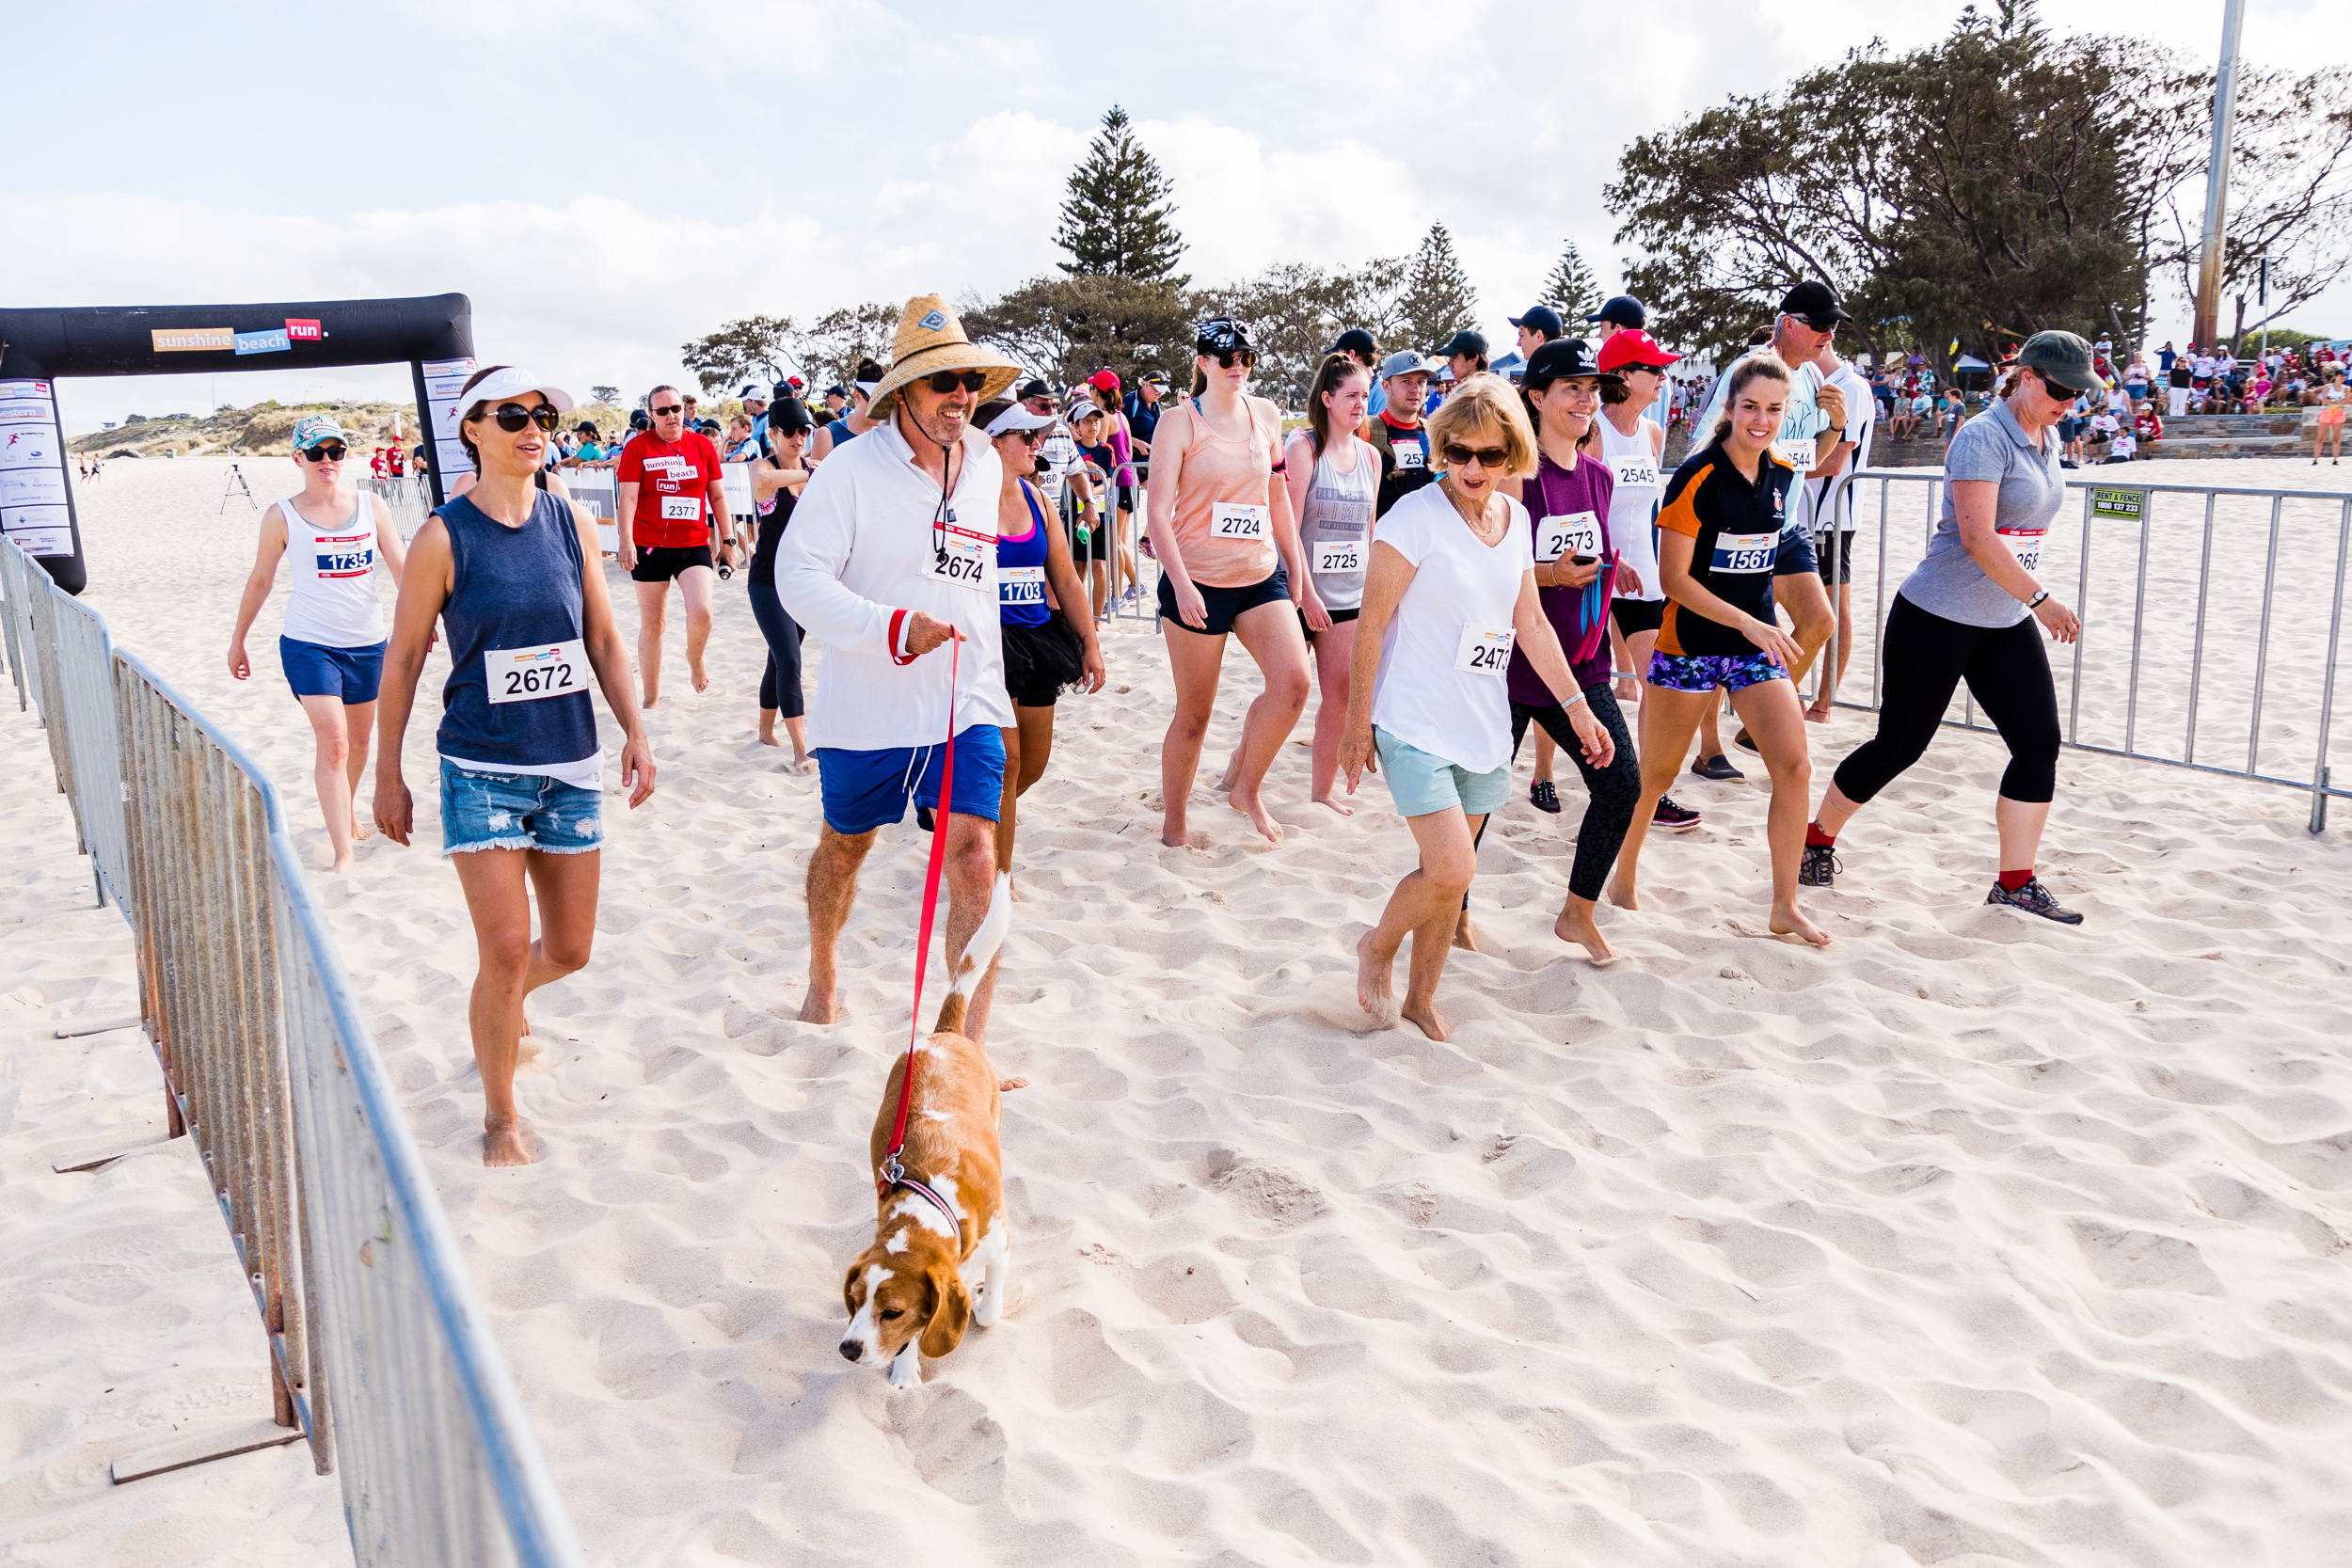 Spyrides_Kyle_Sunshine_Beach_Run_18.2.2018_DSC9287.jpg